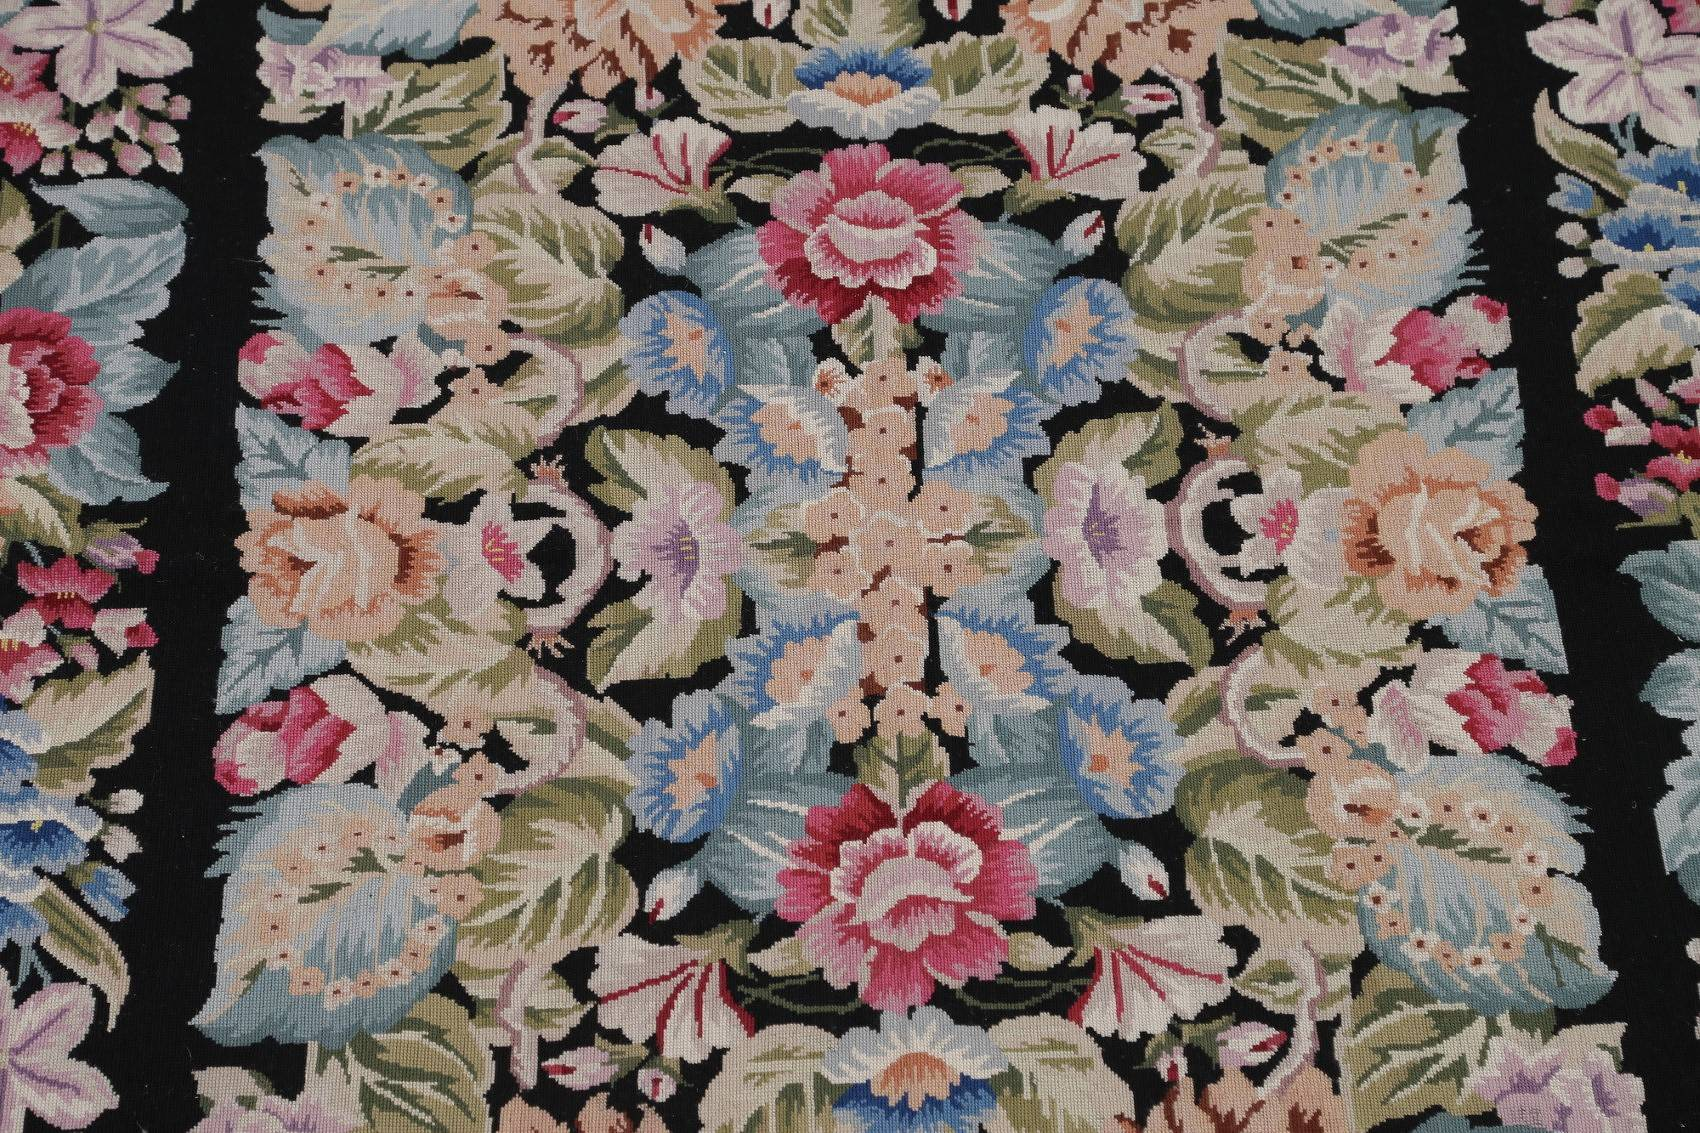 Floral Black Aubusson Chinese Oriental Hand-Woven Area Rug Wool 6x9